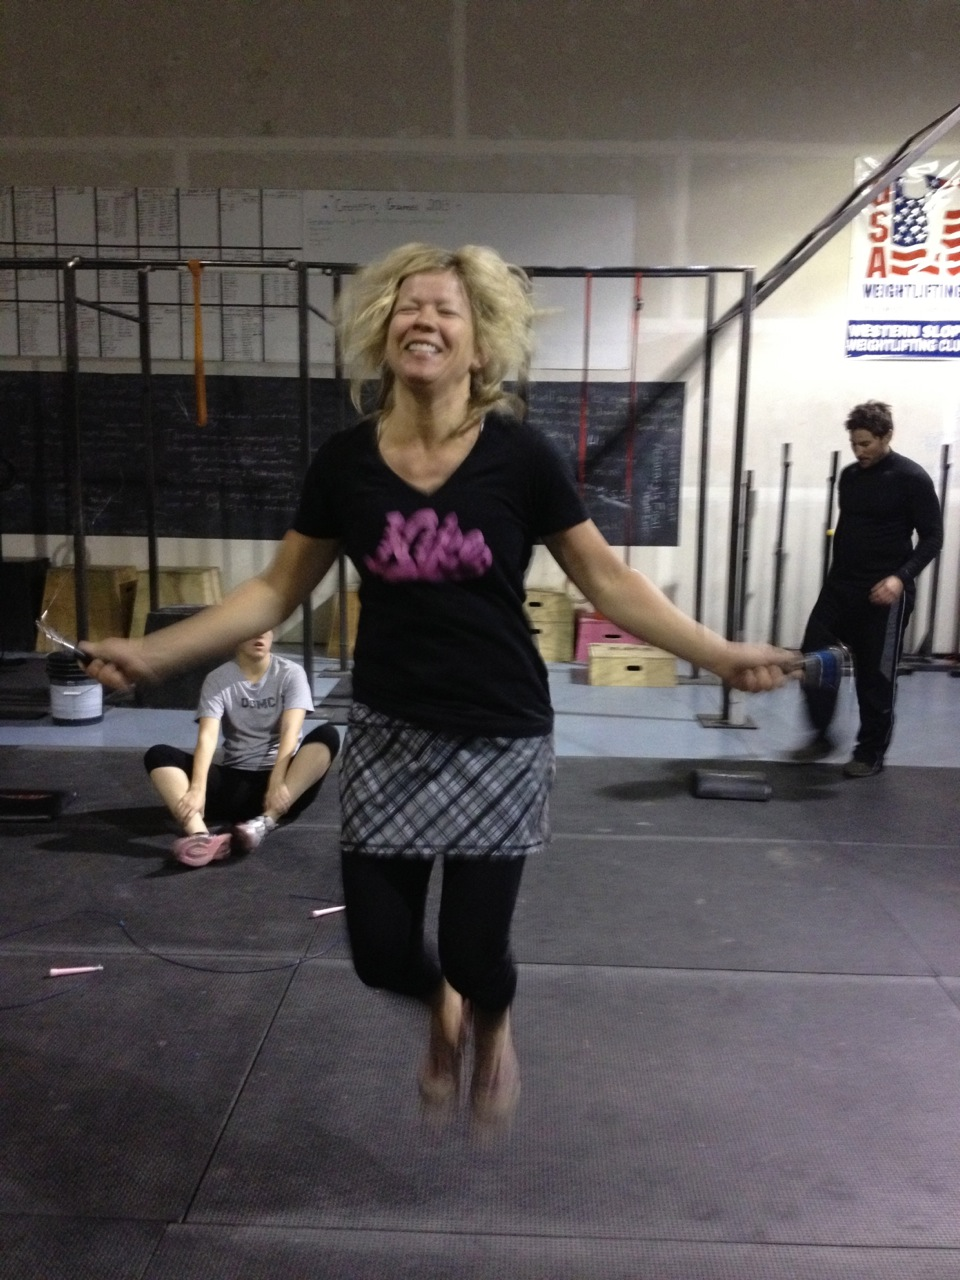 Kendra LOVES double unders ... almost as much as me snapping her photo during them!